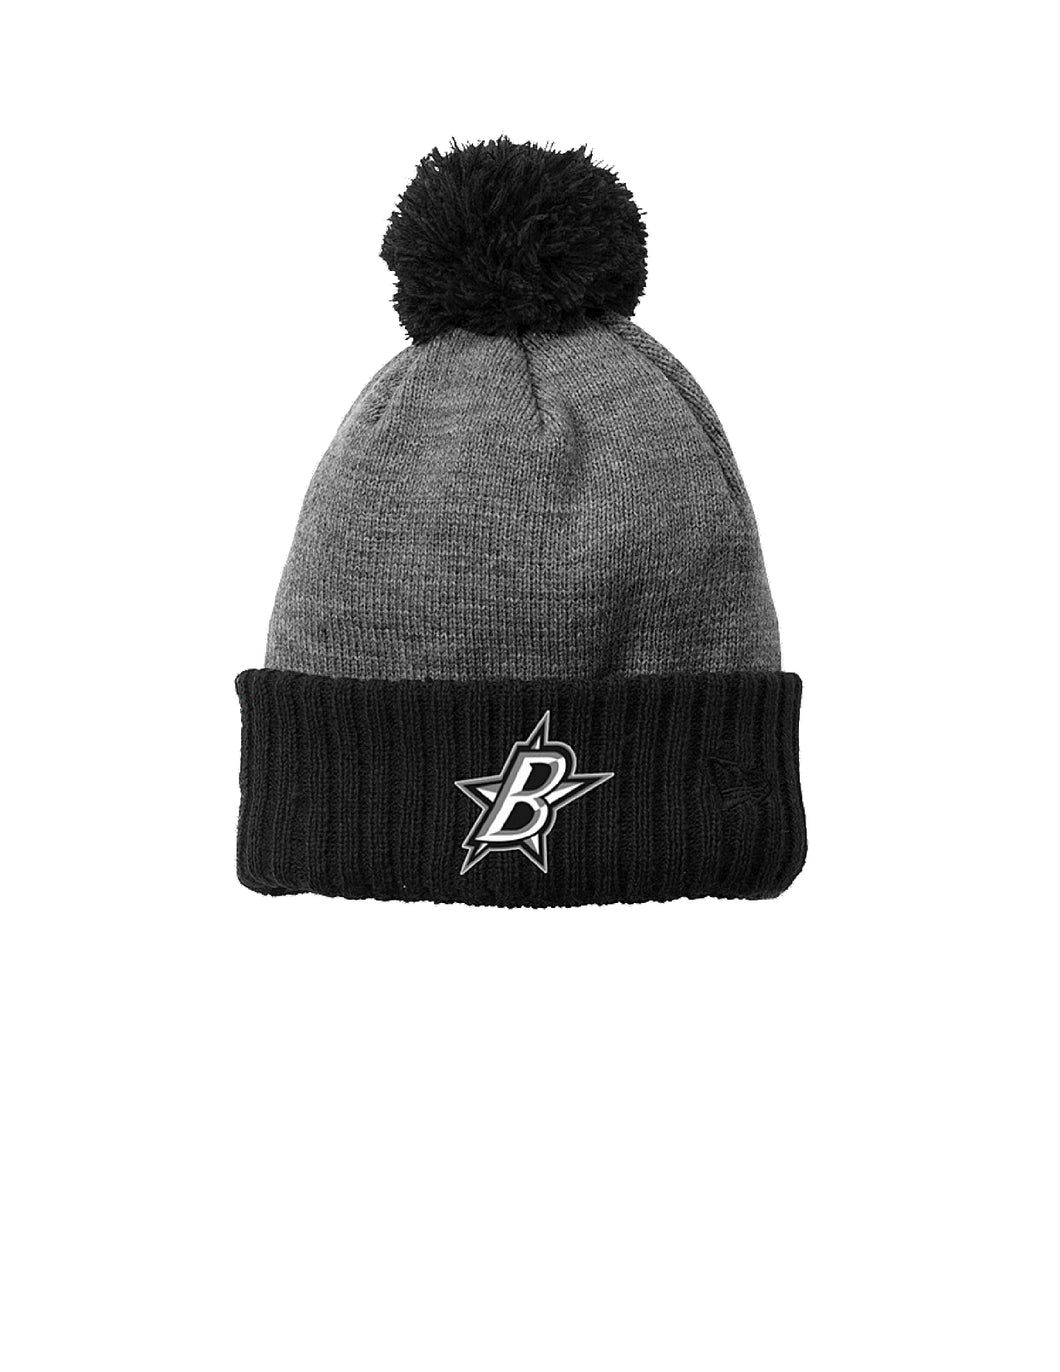 Black Stars New Era ® Colorblock Cuffed Beanie Black/Grey with Black Stars